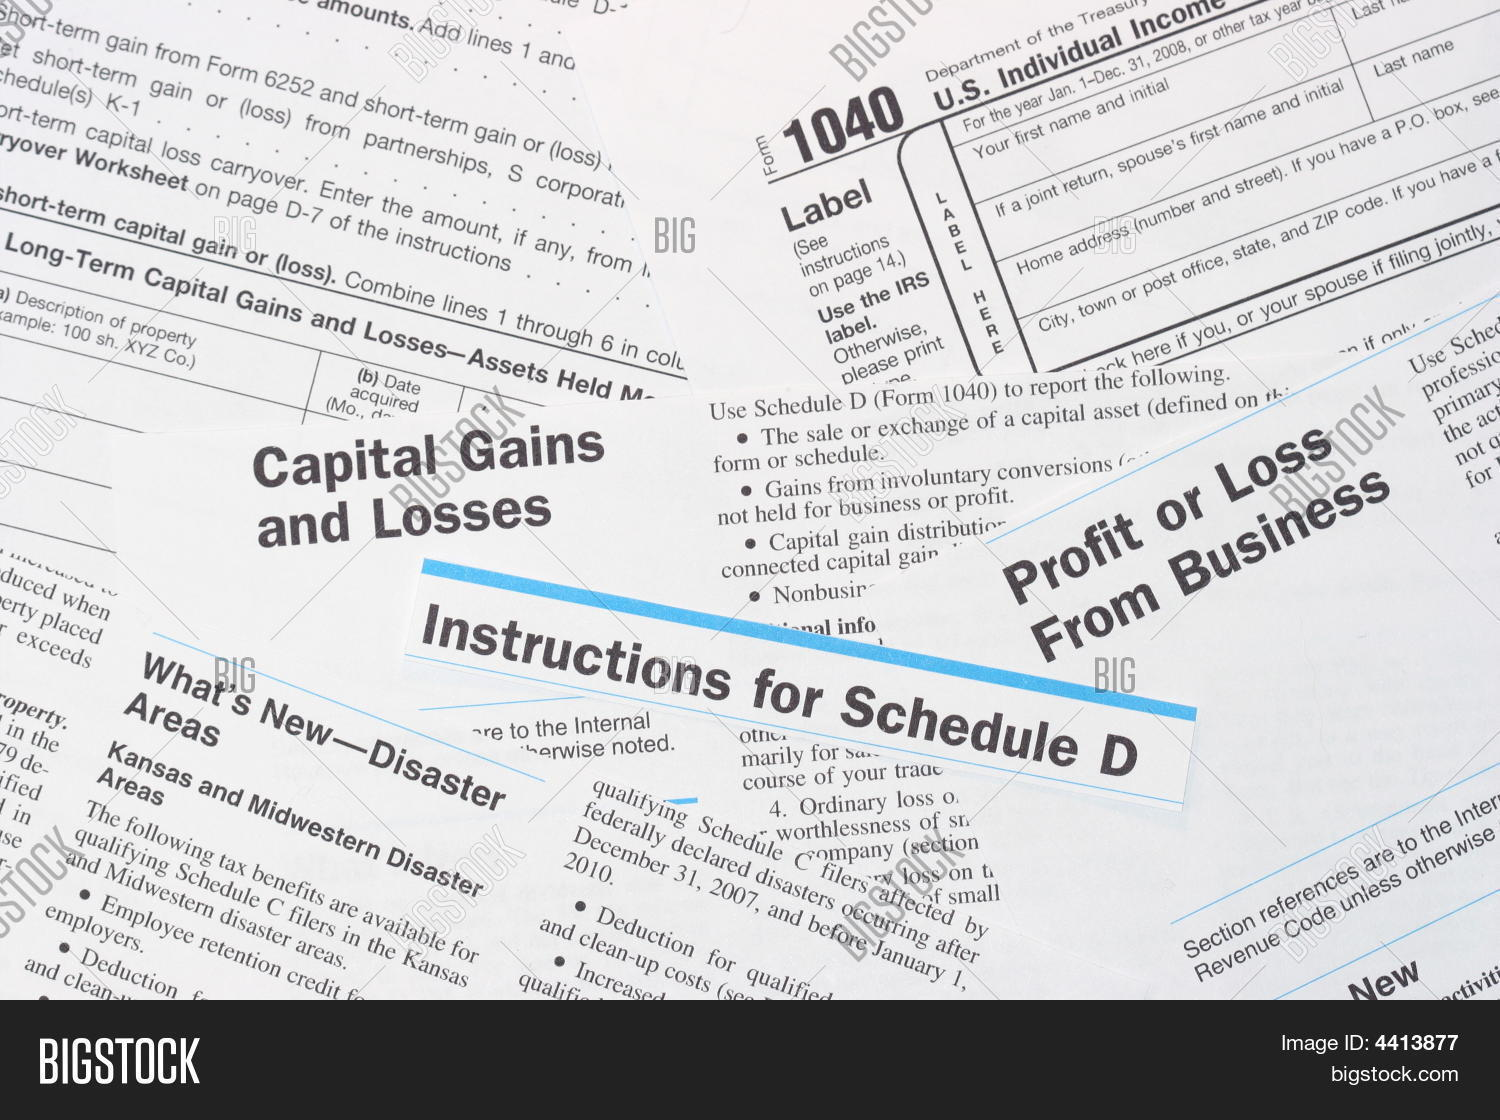 Irs Federal Income Tax Forms And Schedule D Stock